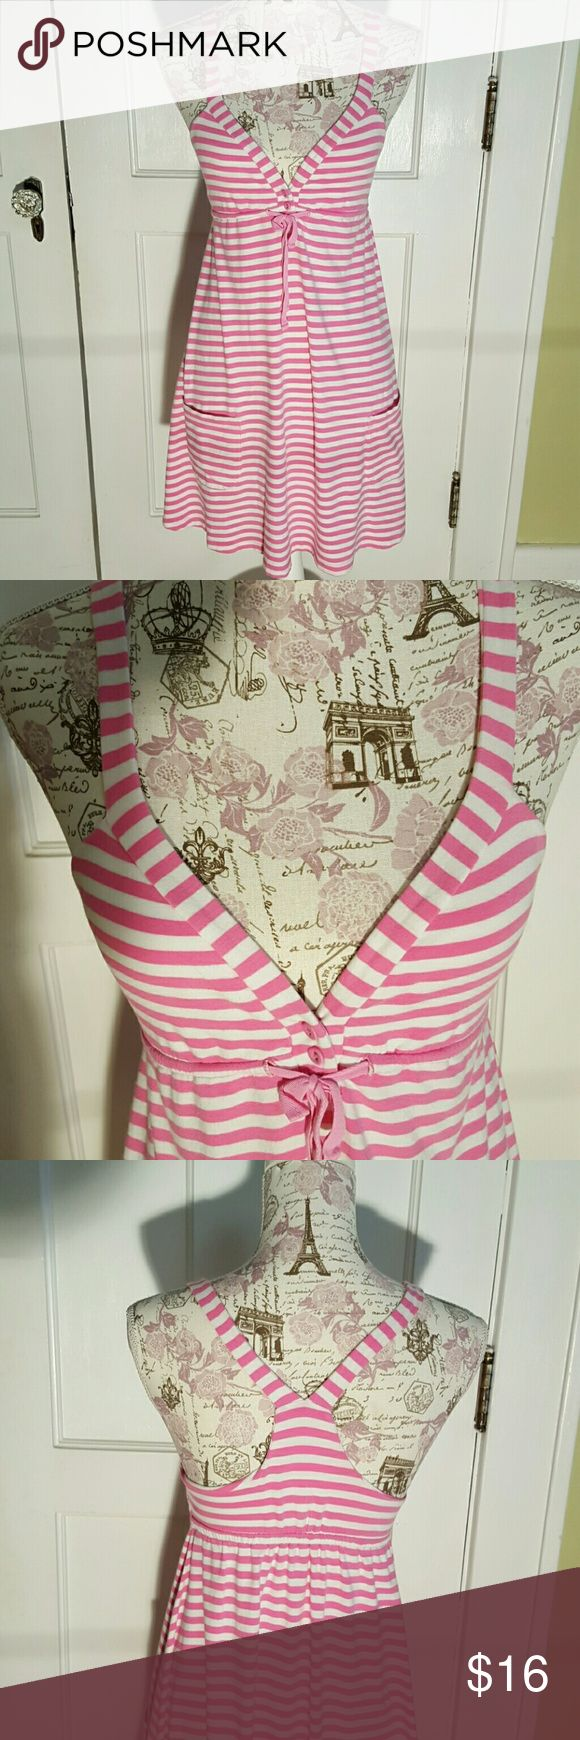 "Pink by Victoria's Secret Sun Dress Pink & white Horizontal Striped Racer Back 3 Small Buttons & Tie in Front 2 Front Lower Pockets 32"" Length PINK Victoria's Secret Dresses"